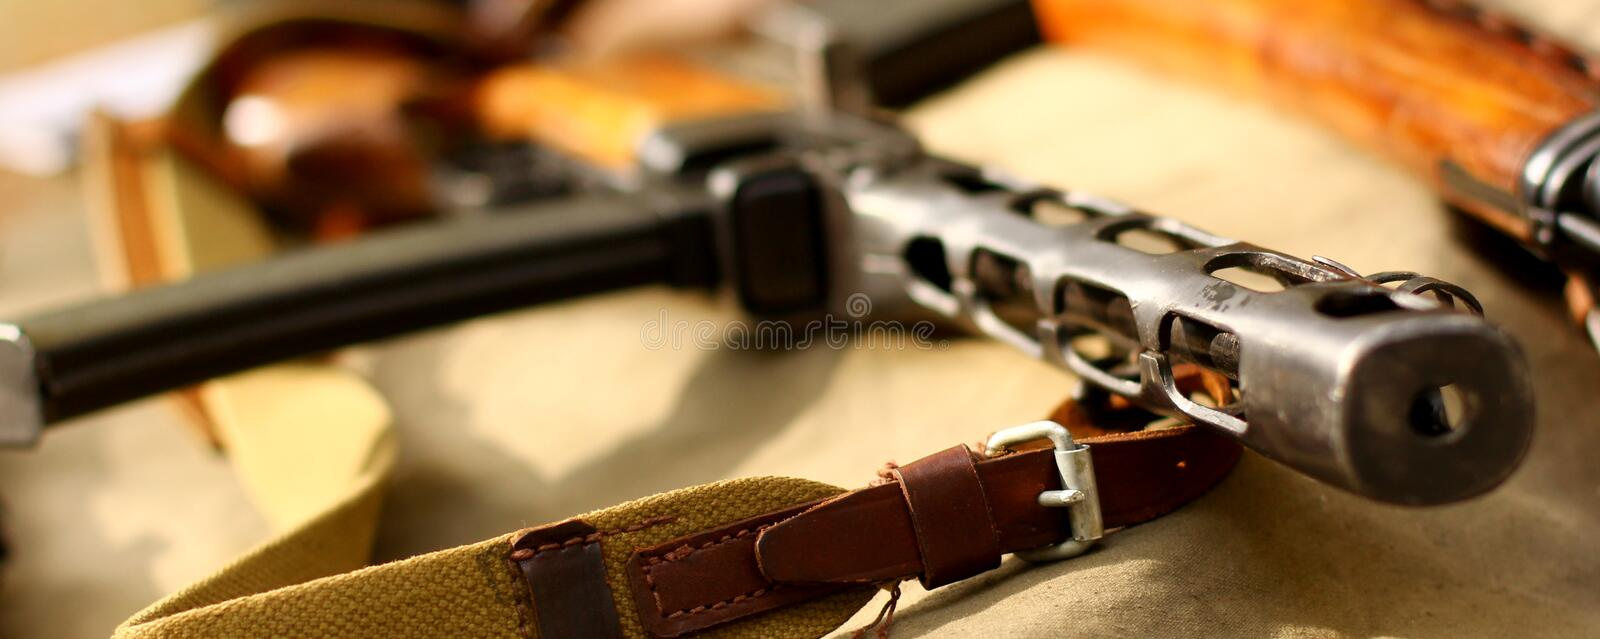 Old automatic guns stock photography